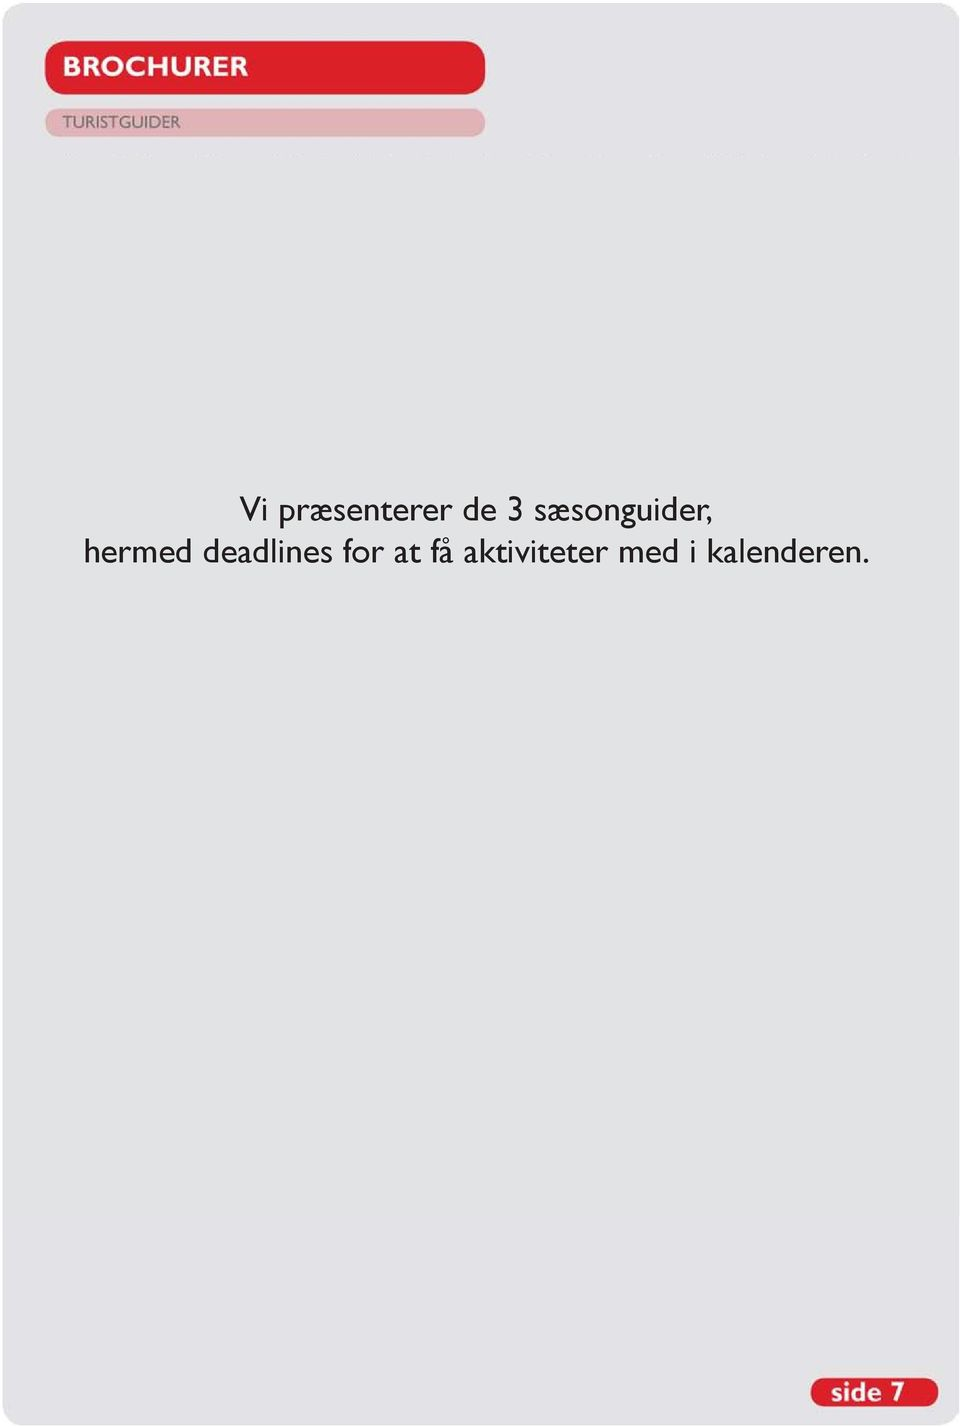 deadlines for at få